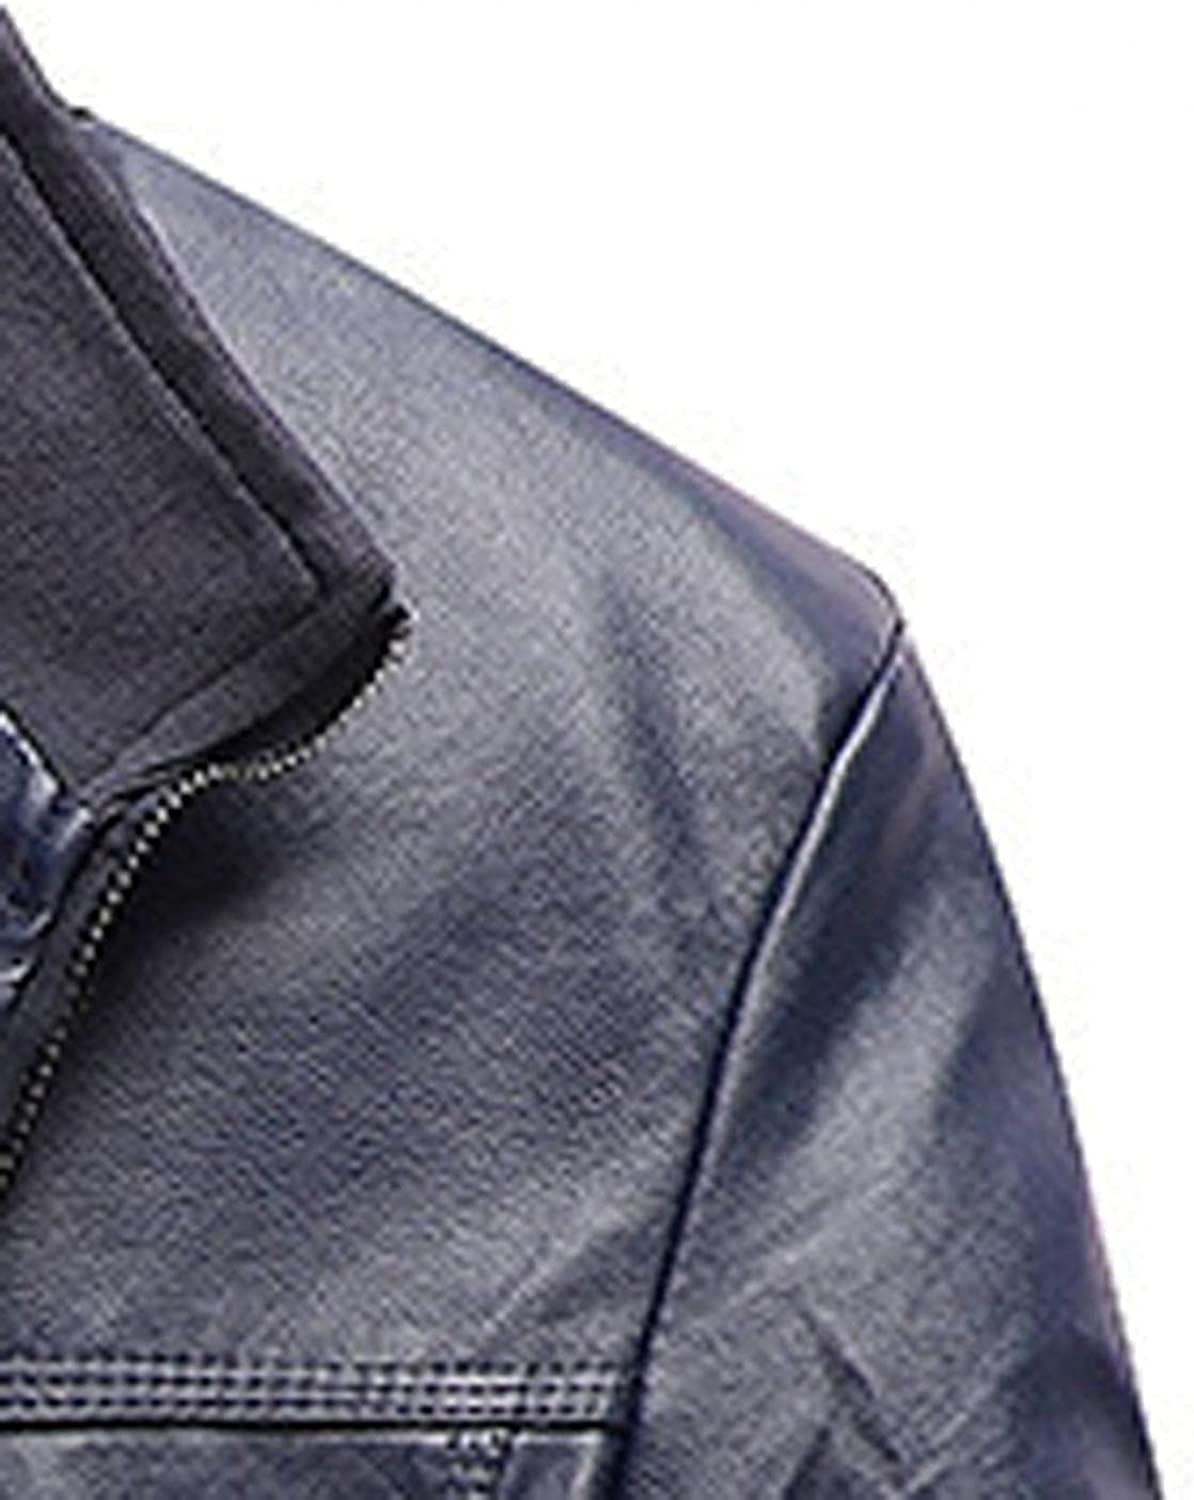 Men's Vintage Stand Collar Pu Leather Jacket Casual Slim Fit Zip-Up Biker Motorcycle Thick Faux Leather Outwear